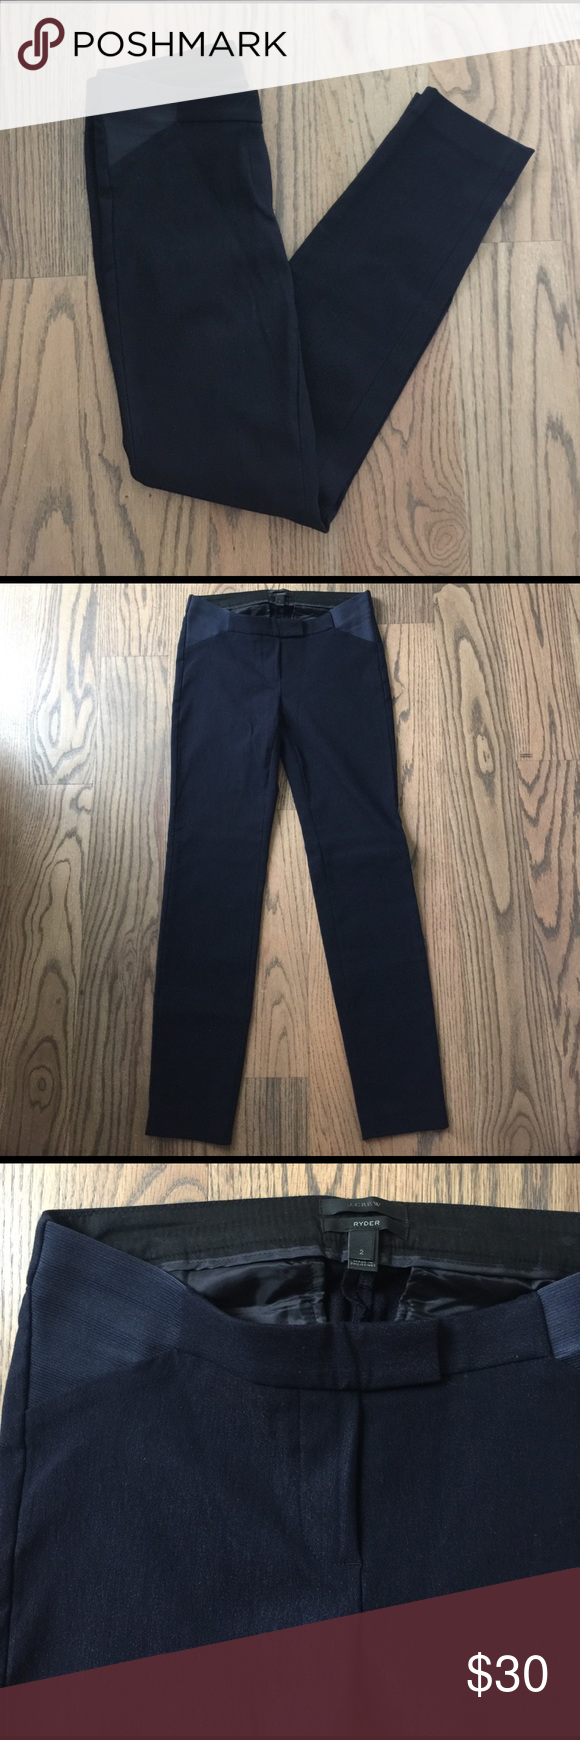 """J. Crew Maternity dress pants Navy blue J. Crew """"Ryder"""" maternity dress pants. Straight-leg fit. This is a re-Posh. Unfortunately they did not fit me. 28 in inseam. Brand new. Original seller never wore. Excellent condition. J. Crew Pants Straight Leg"""